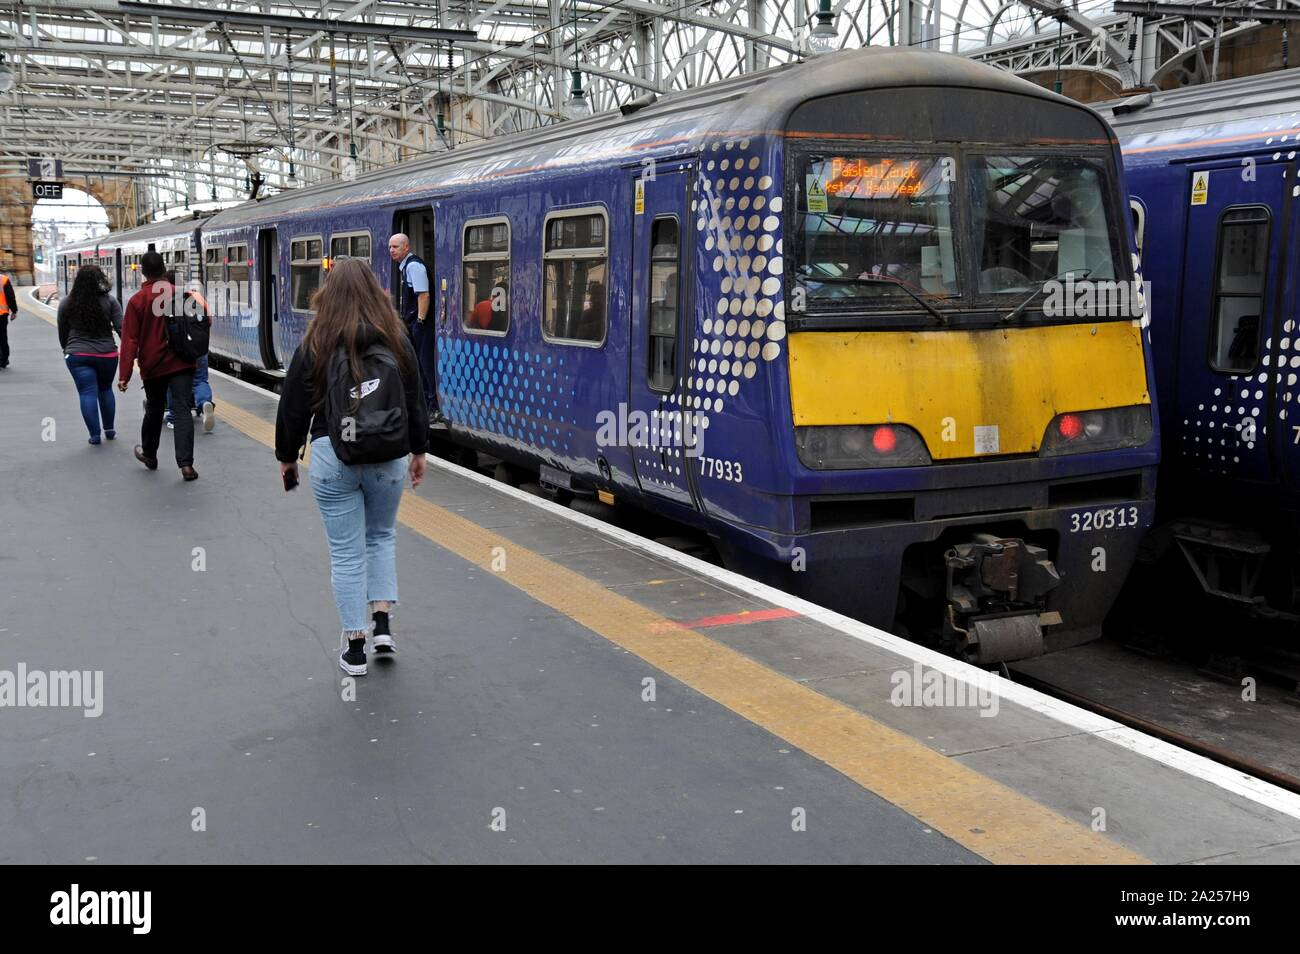 Passengers boarding Scotrail Class 320 electric trains at Glasgow Central Station Stock Photo